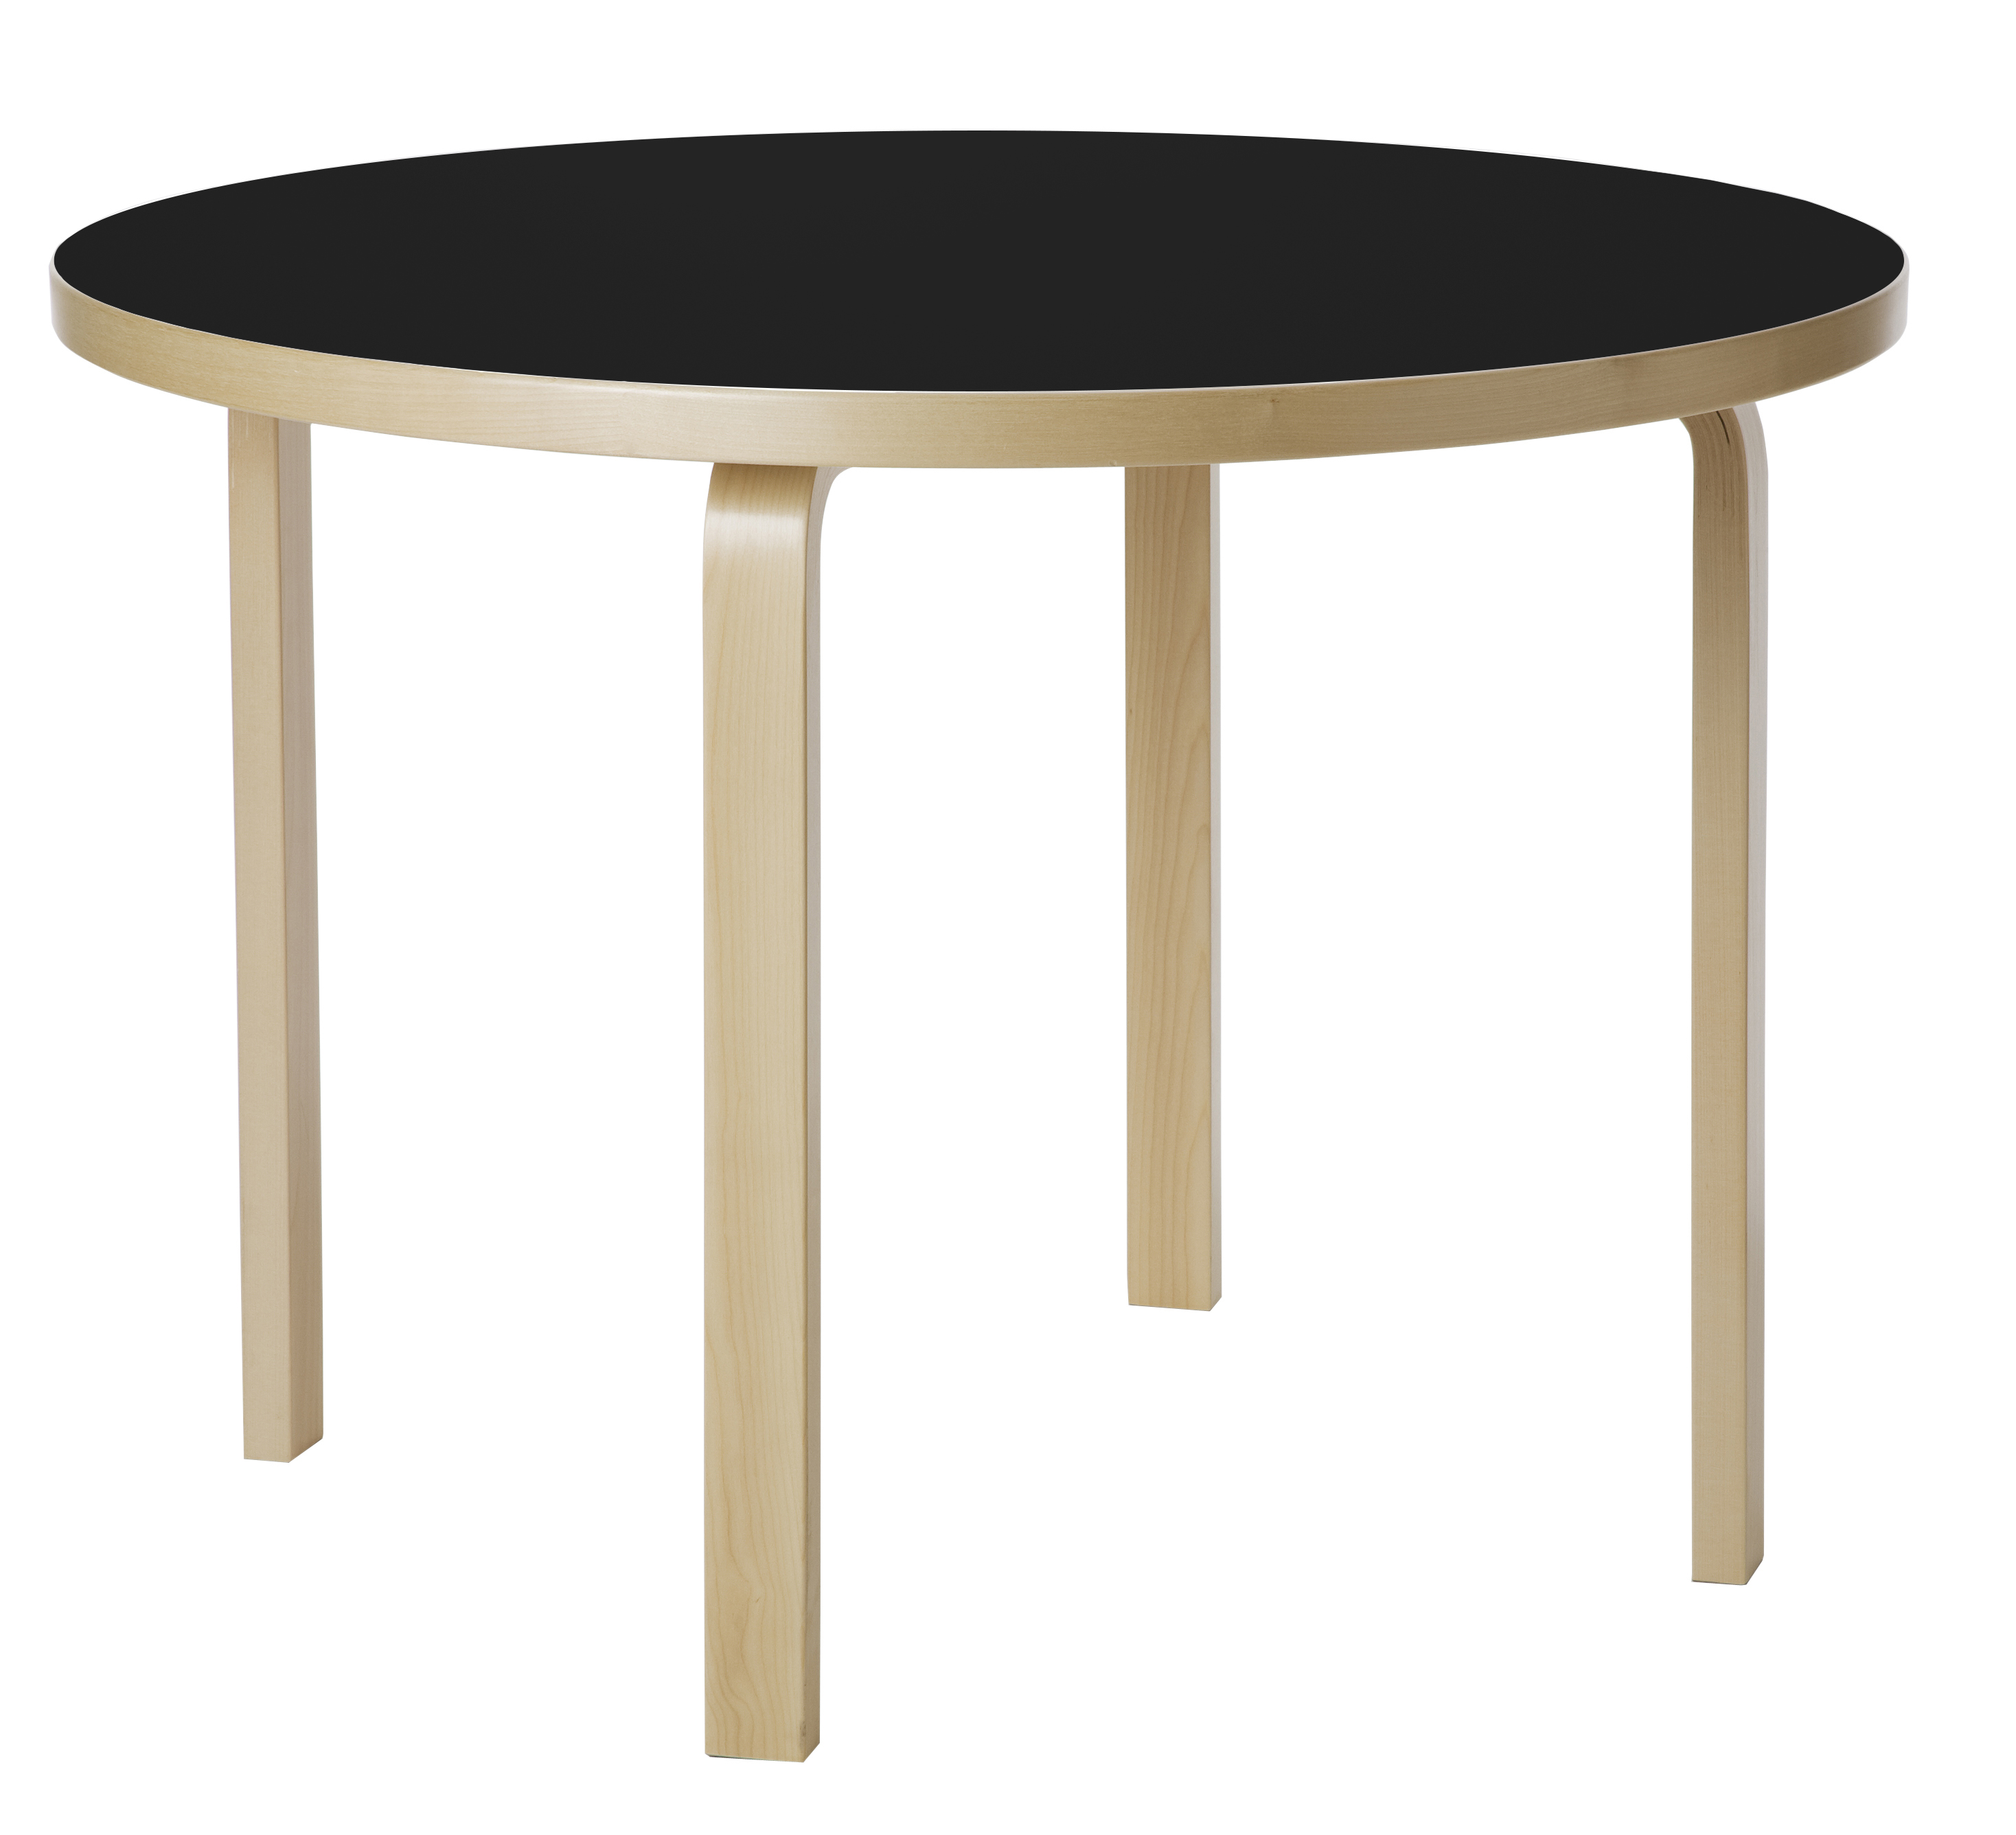 Charmant Birch Table Top With Black Linoleum